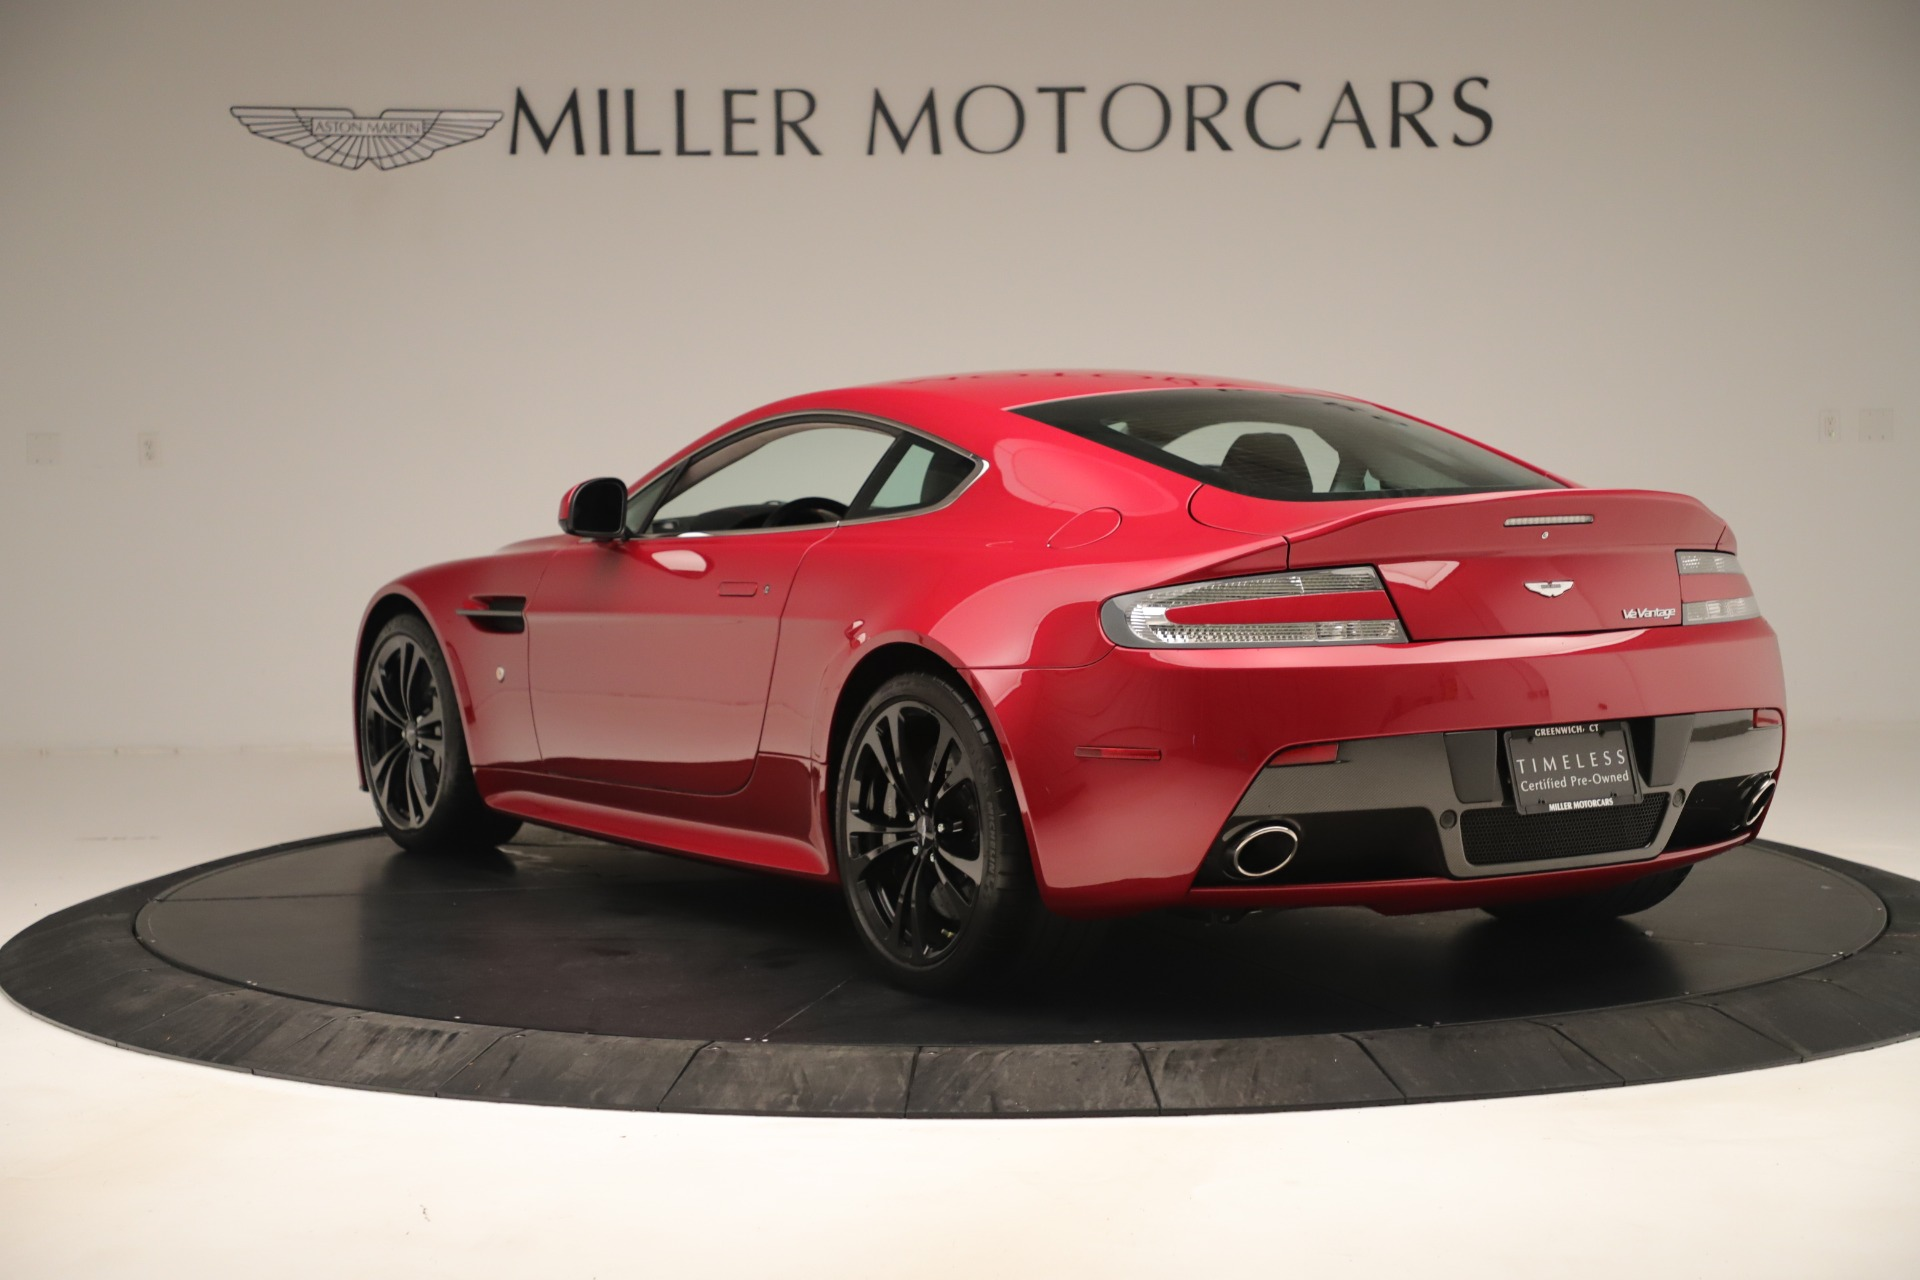 Used 2011 Aston Martin V12 Vantage Coupe For Sale In Westport, CT 3395_p6